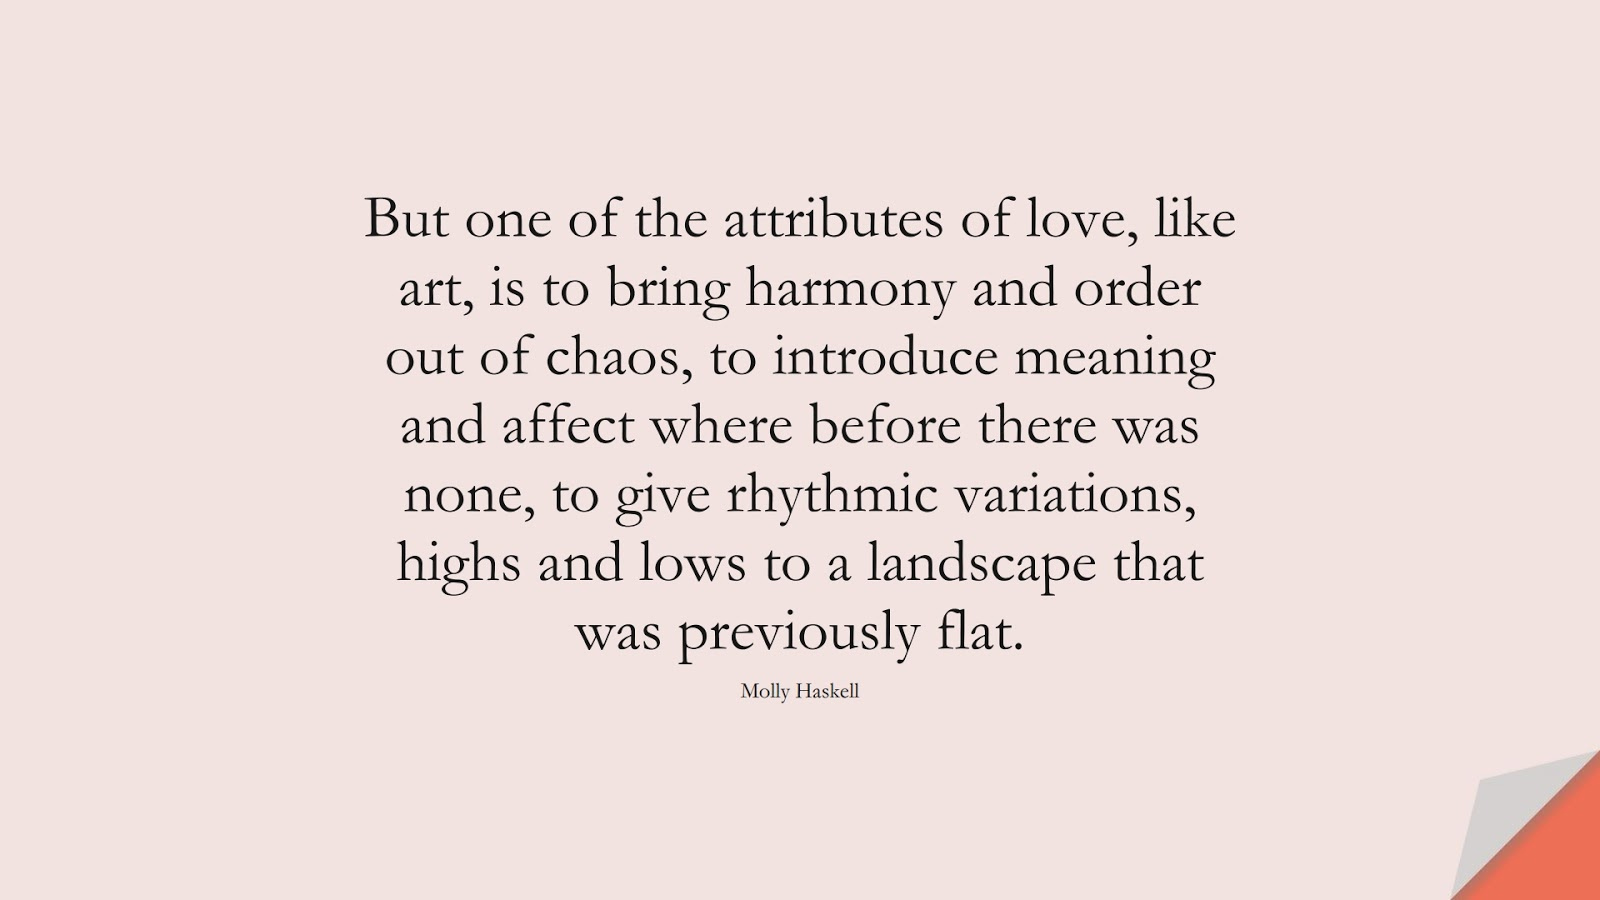 But one of the attributes of love, like art, is to bring harmony and order out of chaos, to introduce meaning and affect where before there was none, to give rhythmic variations, highs and lows to a landscape that was previously flat. (Molly Haskell);  #LoveQuotes